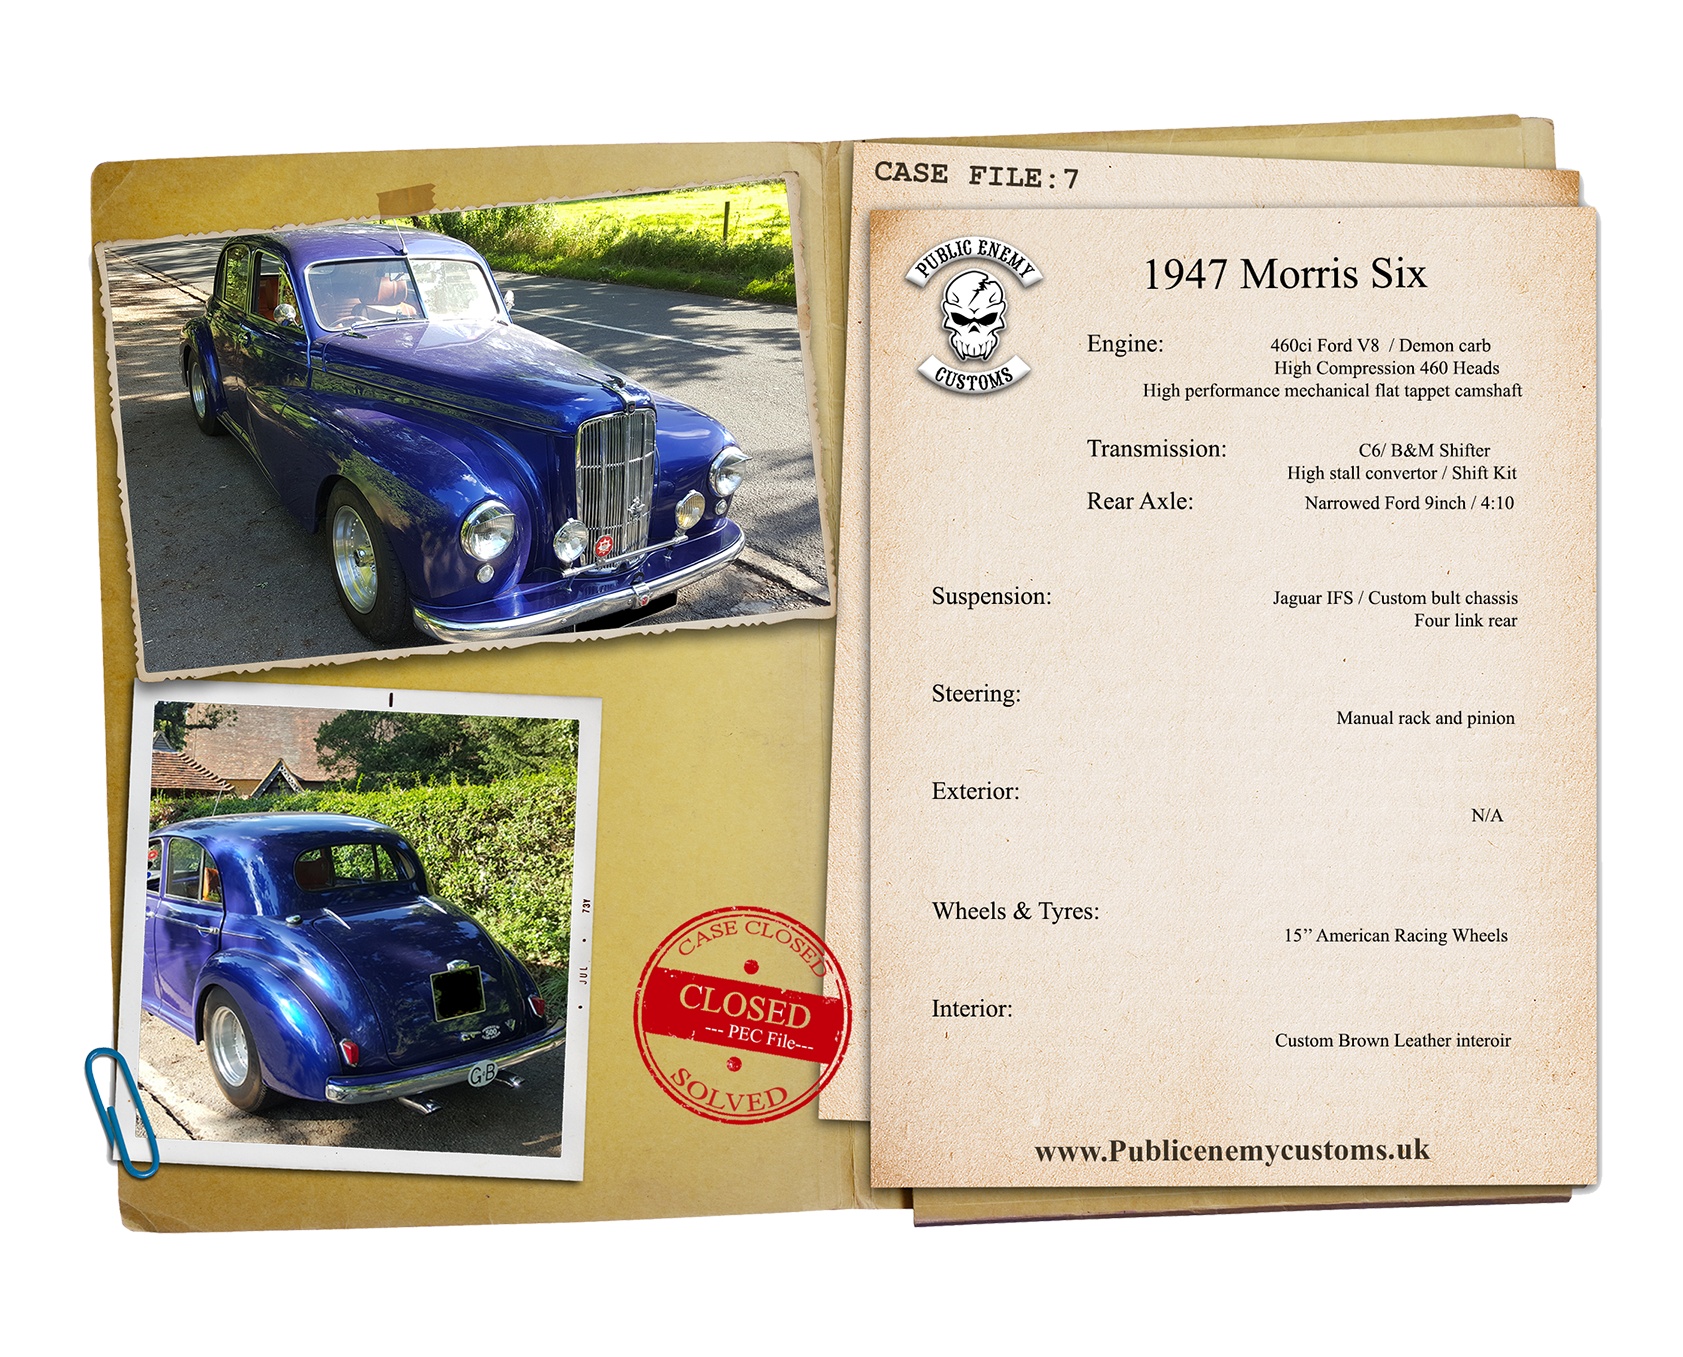 1947 Morris Six Casefile 7 small